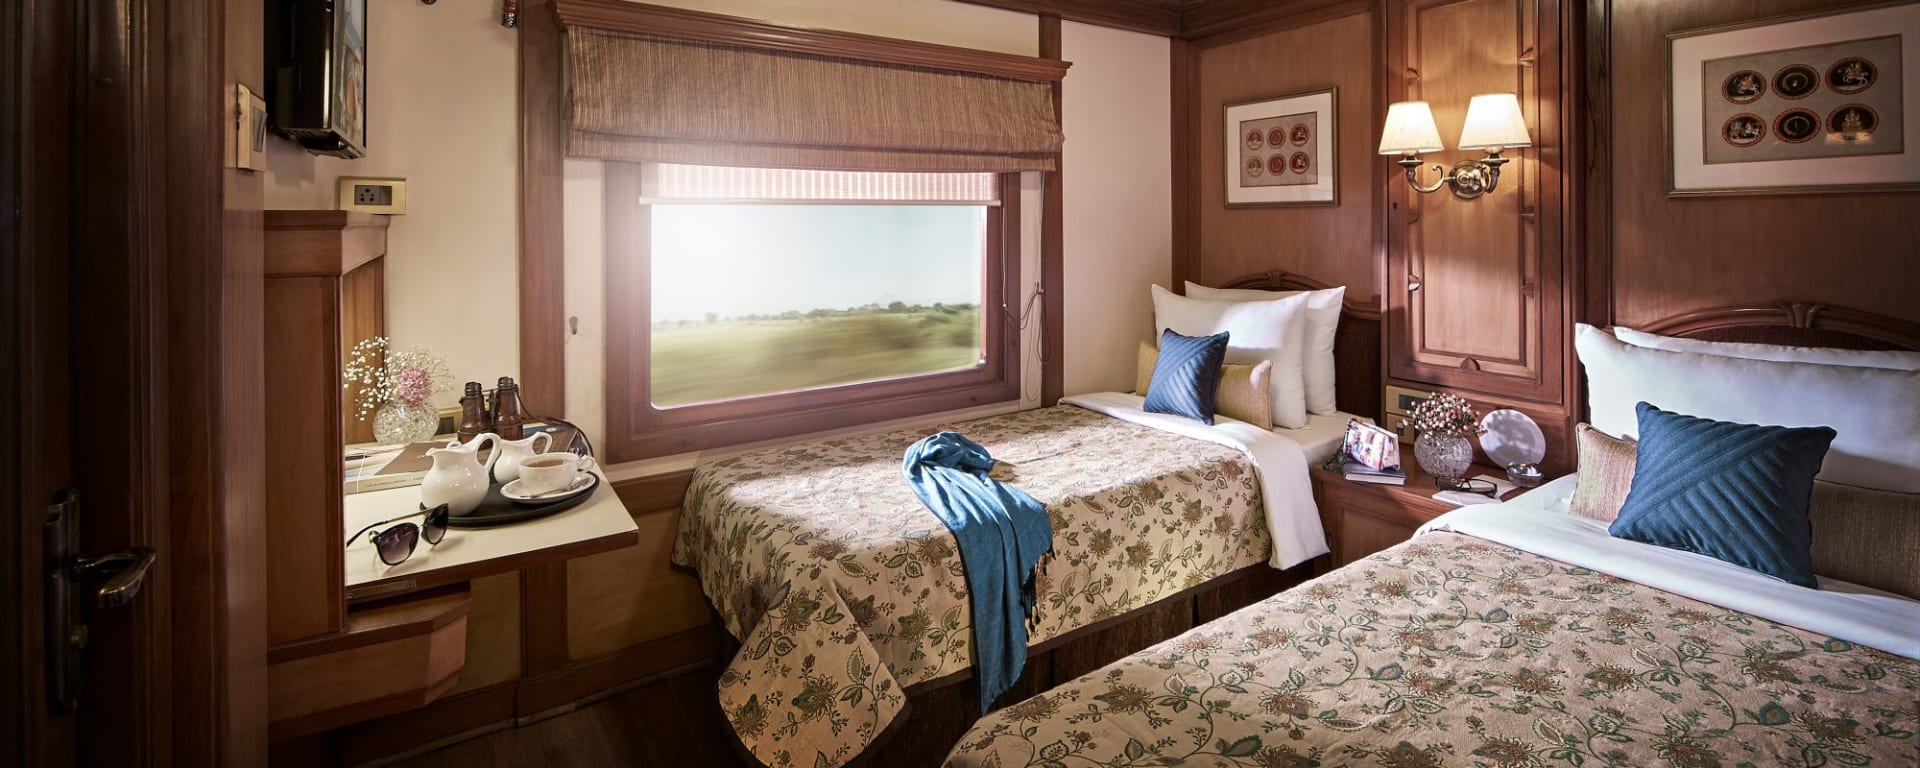 «The Deccan Odyssey» - Die Glanzlichter Rajasthans ab Mumbai: Deluxe Twin room